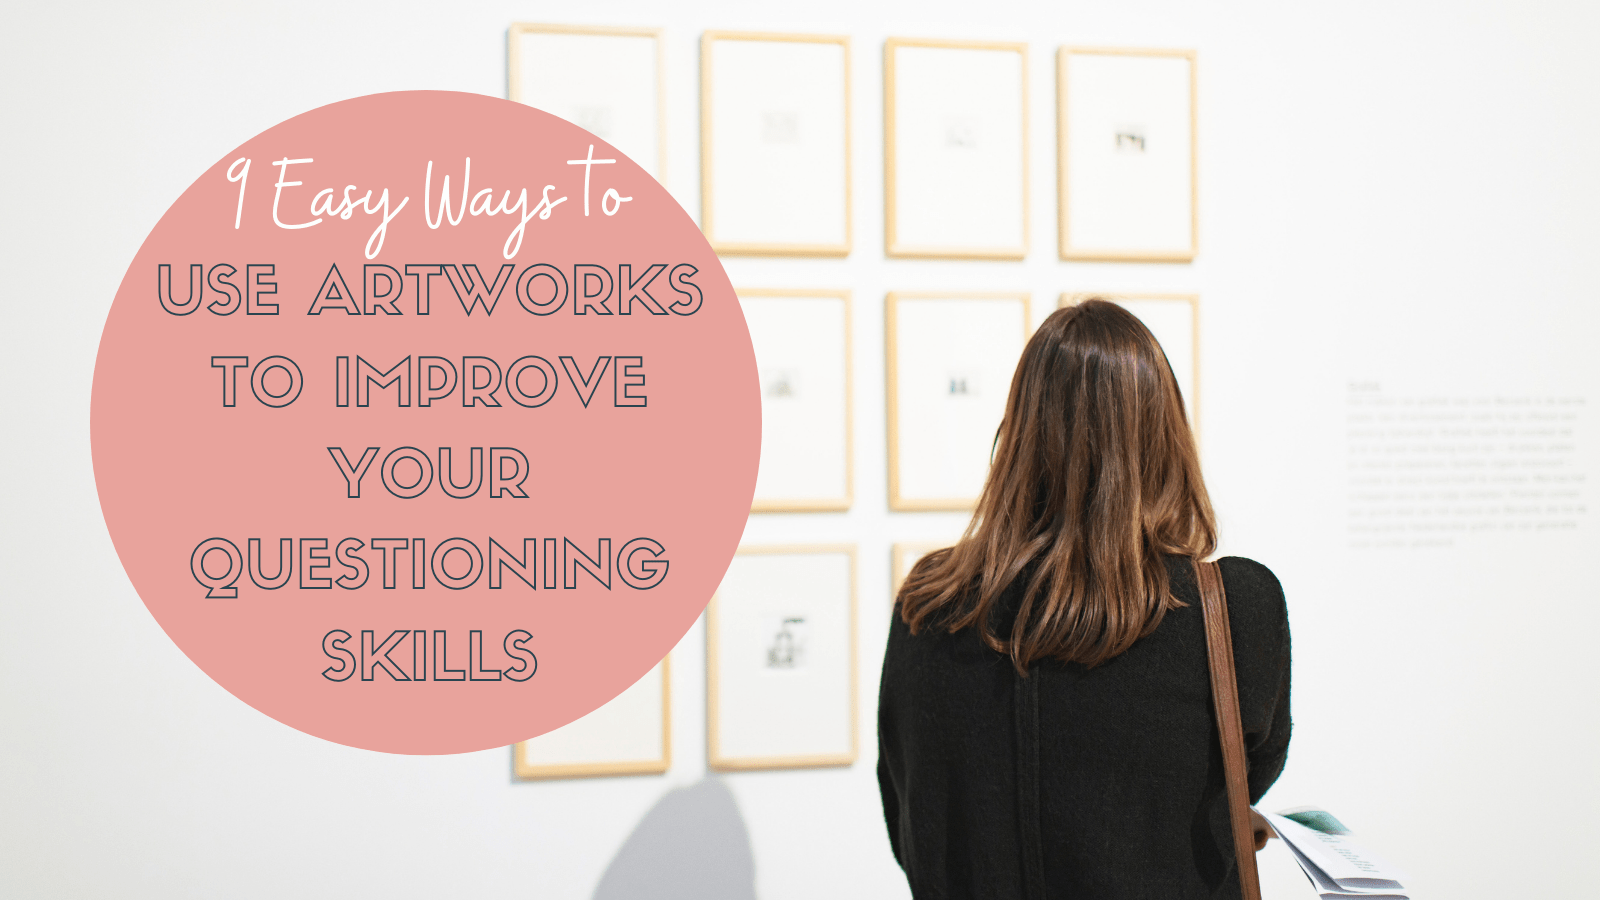 9 Easy Ways to Use Artworks to Improve your Questioning Skills